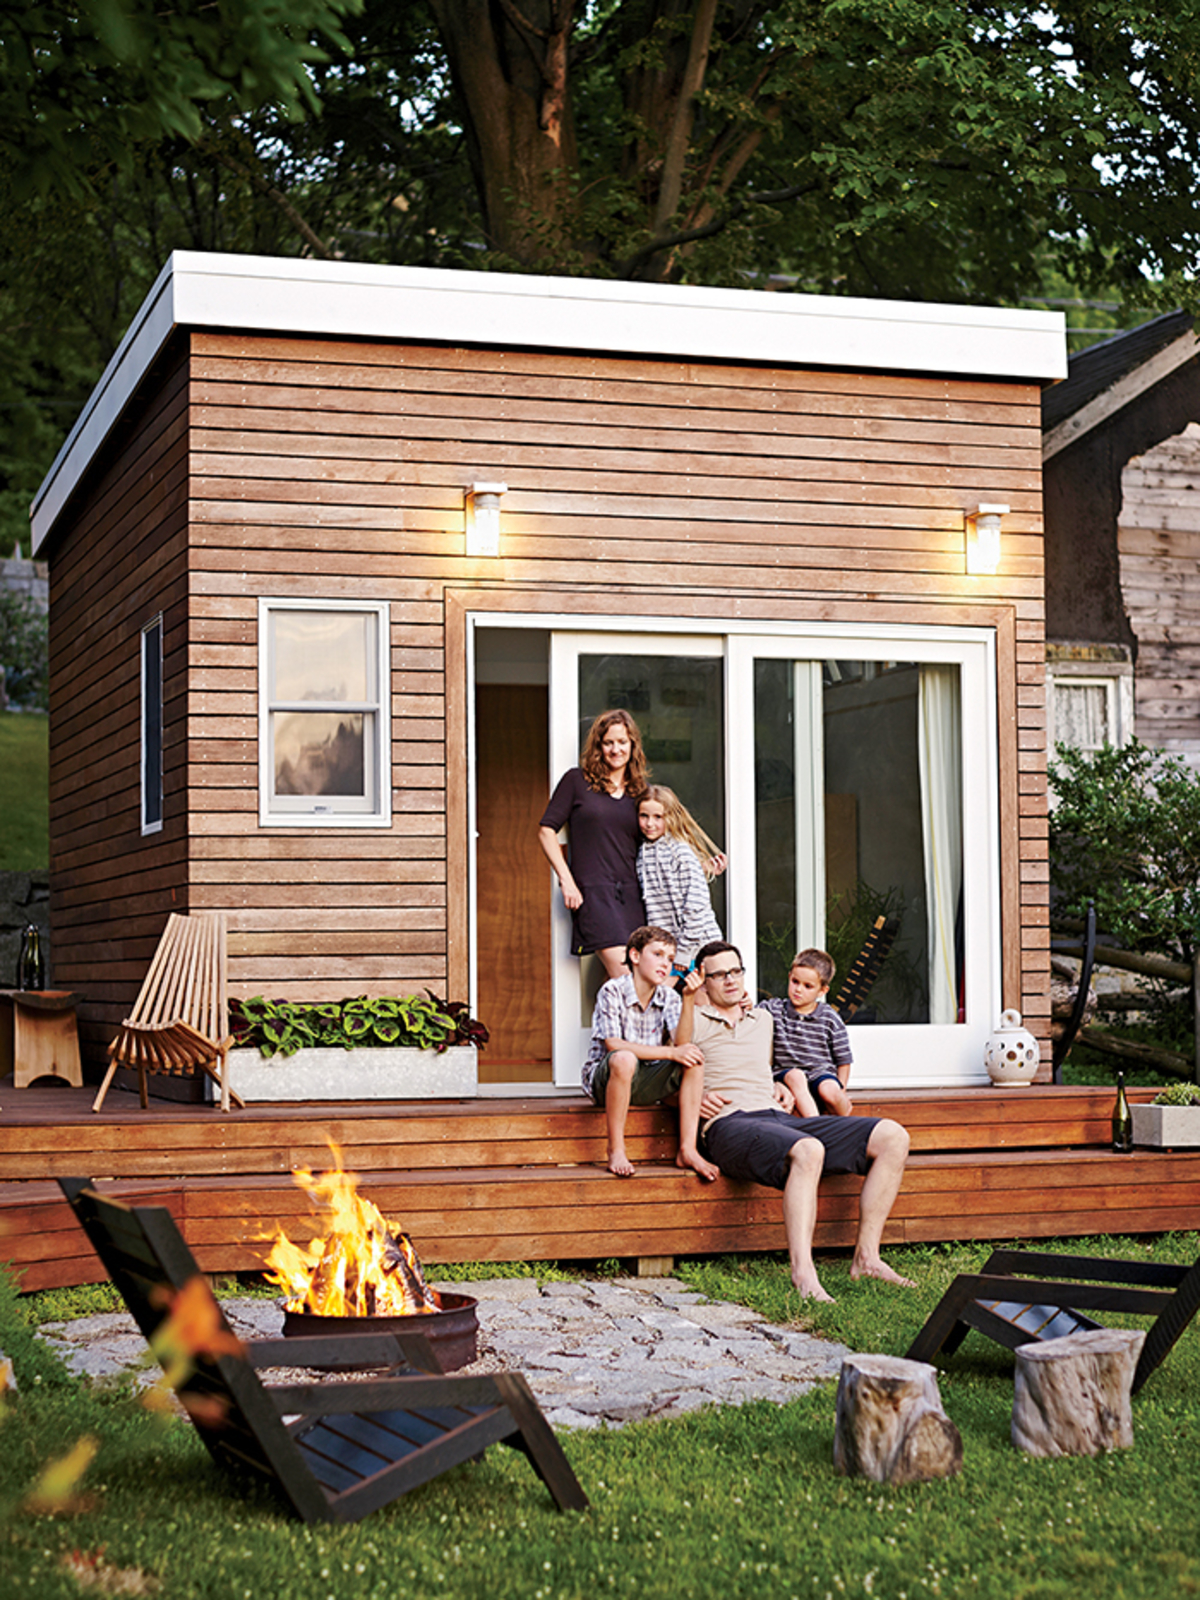 TINY HOUSE TOWN: A DIY 168 Sq Ft Backyard Studio